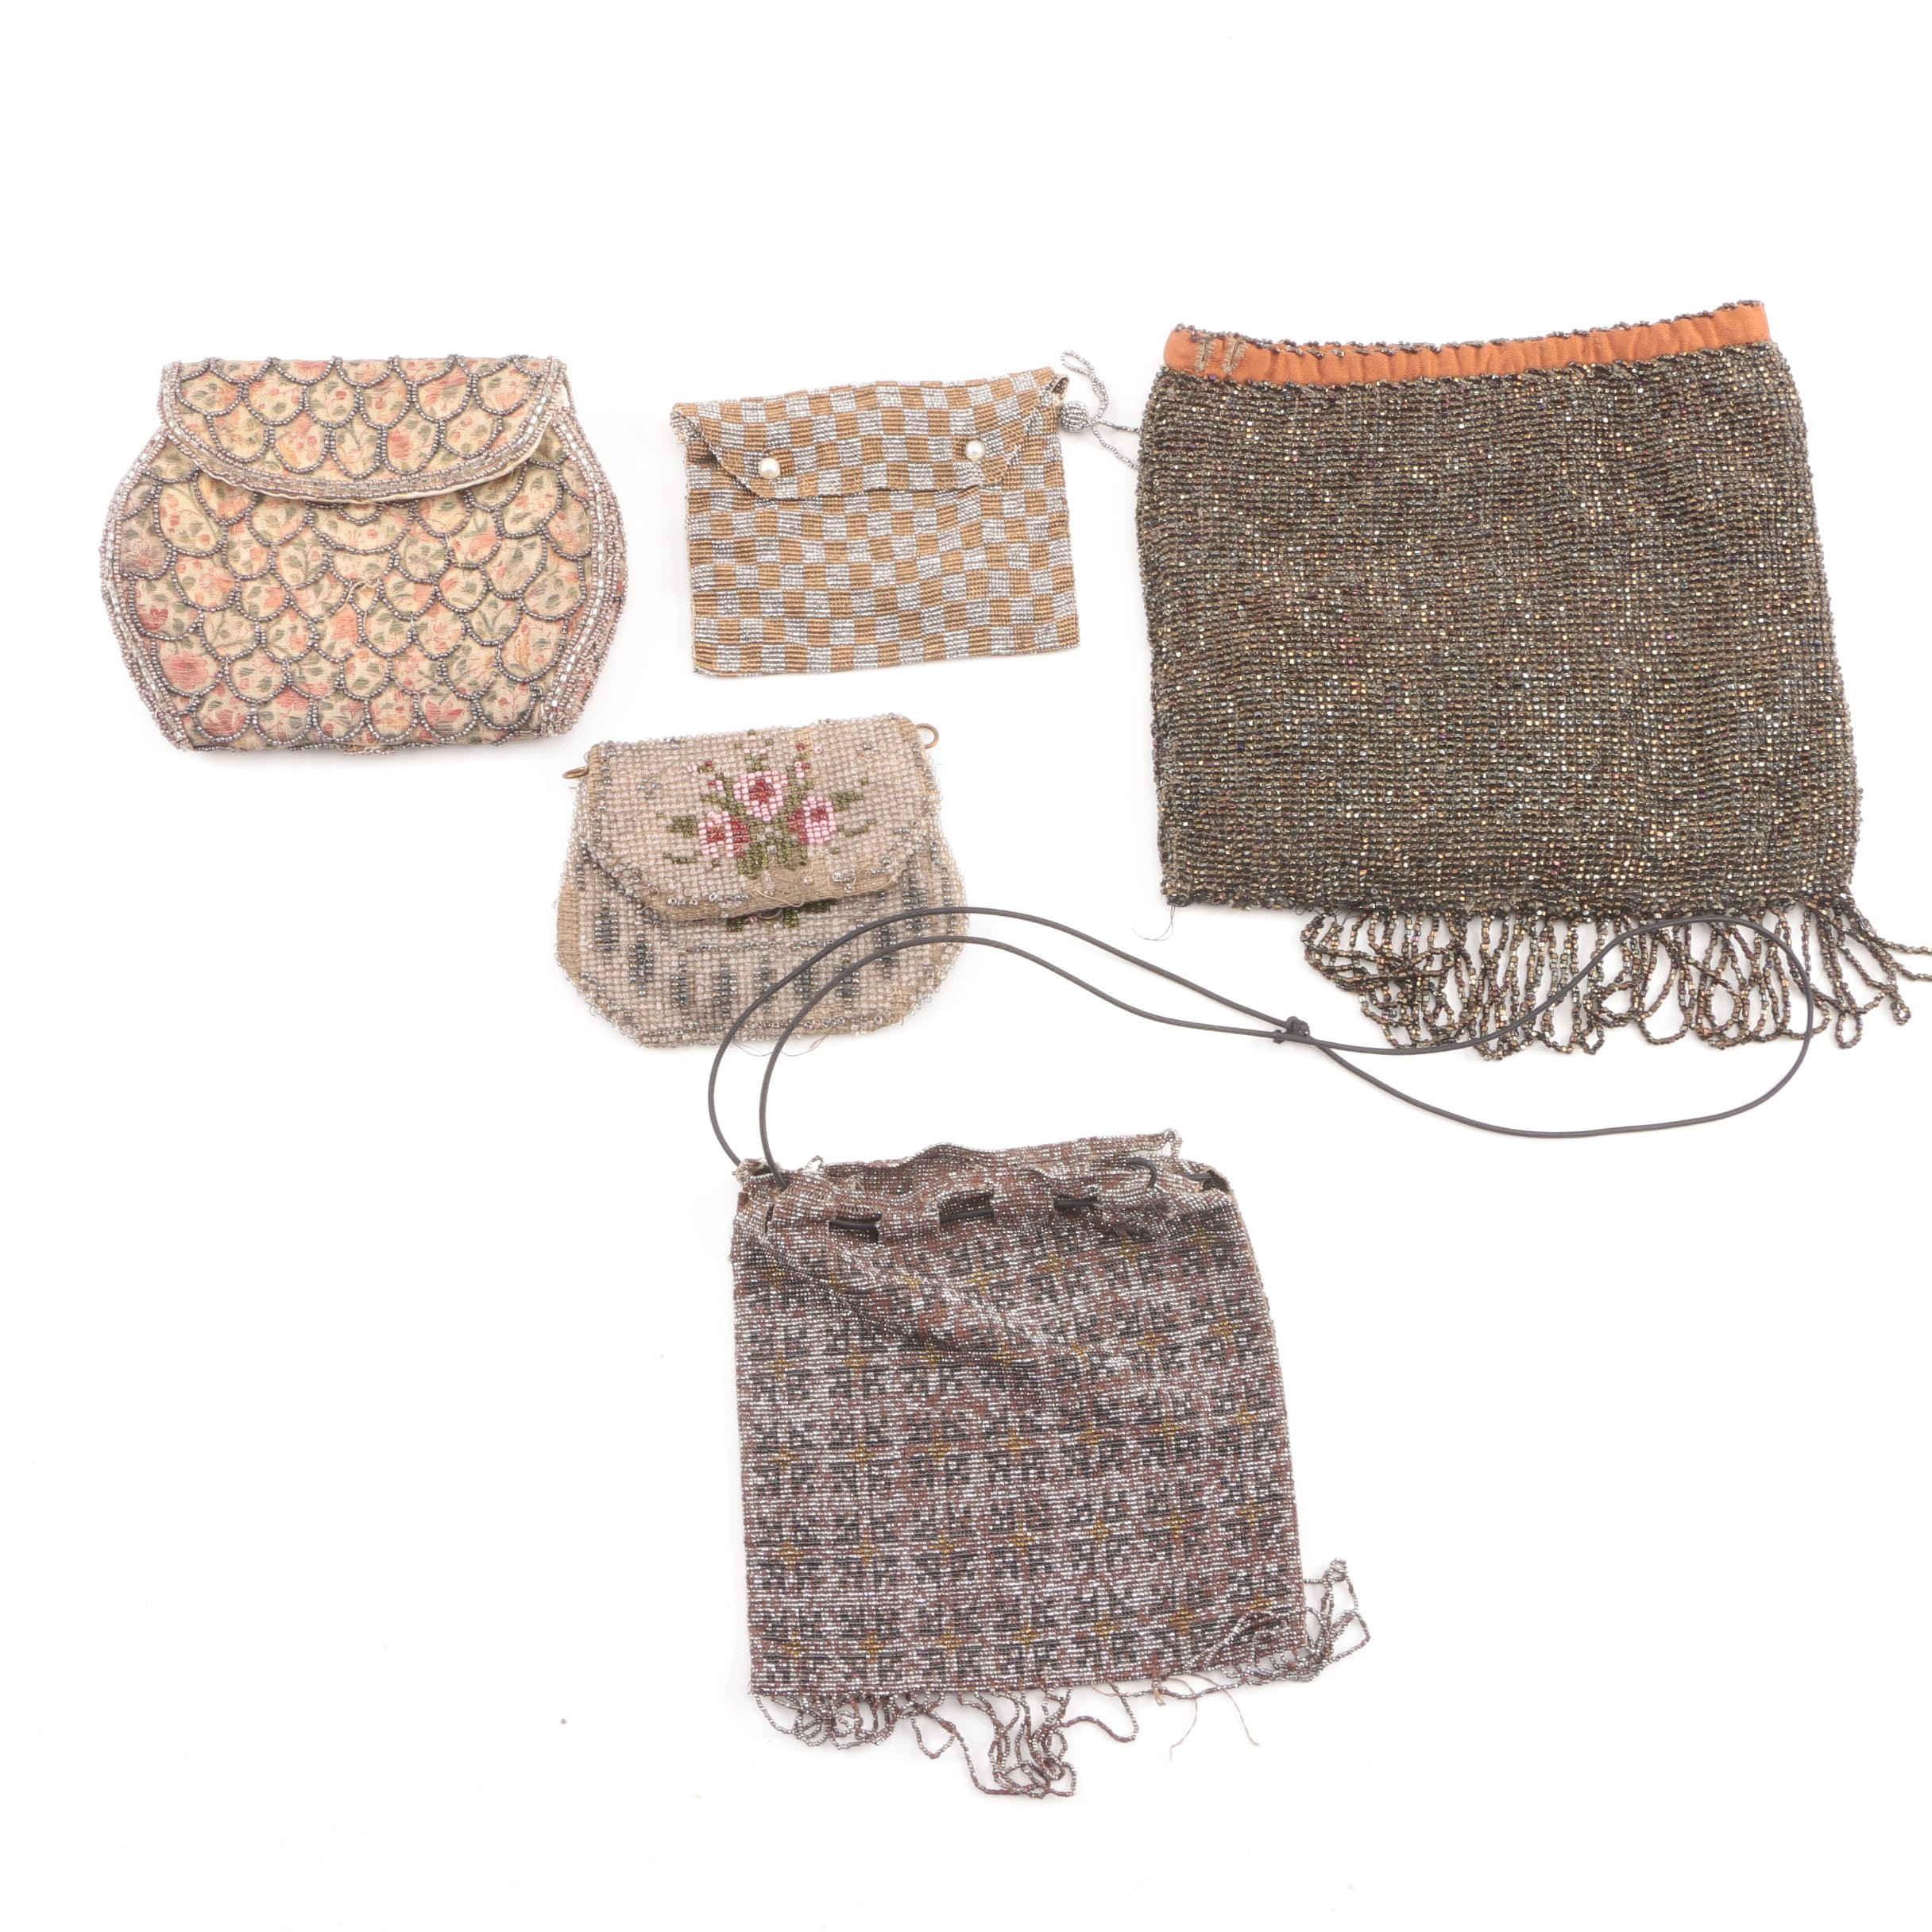 Antique Beaded Handbags and Coin Purses